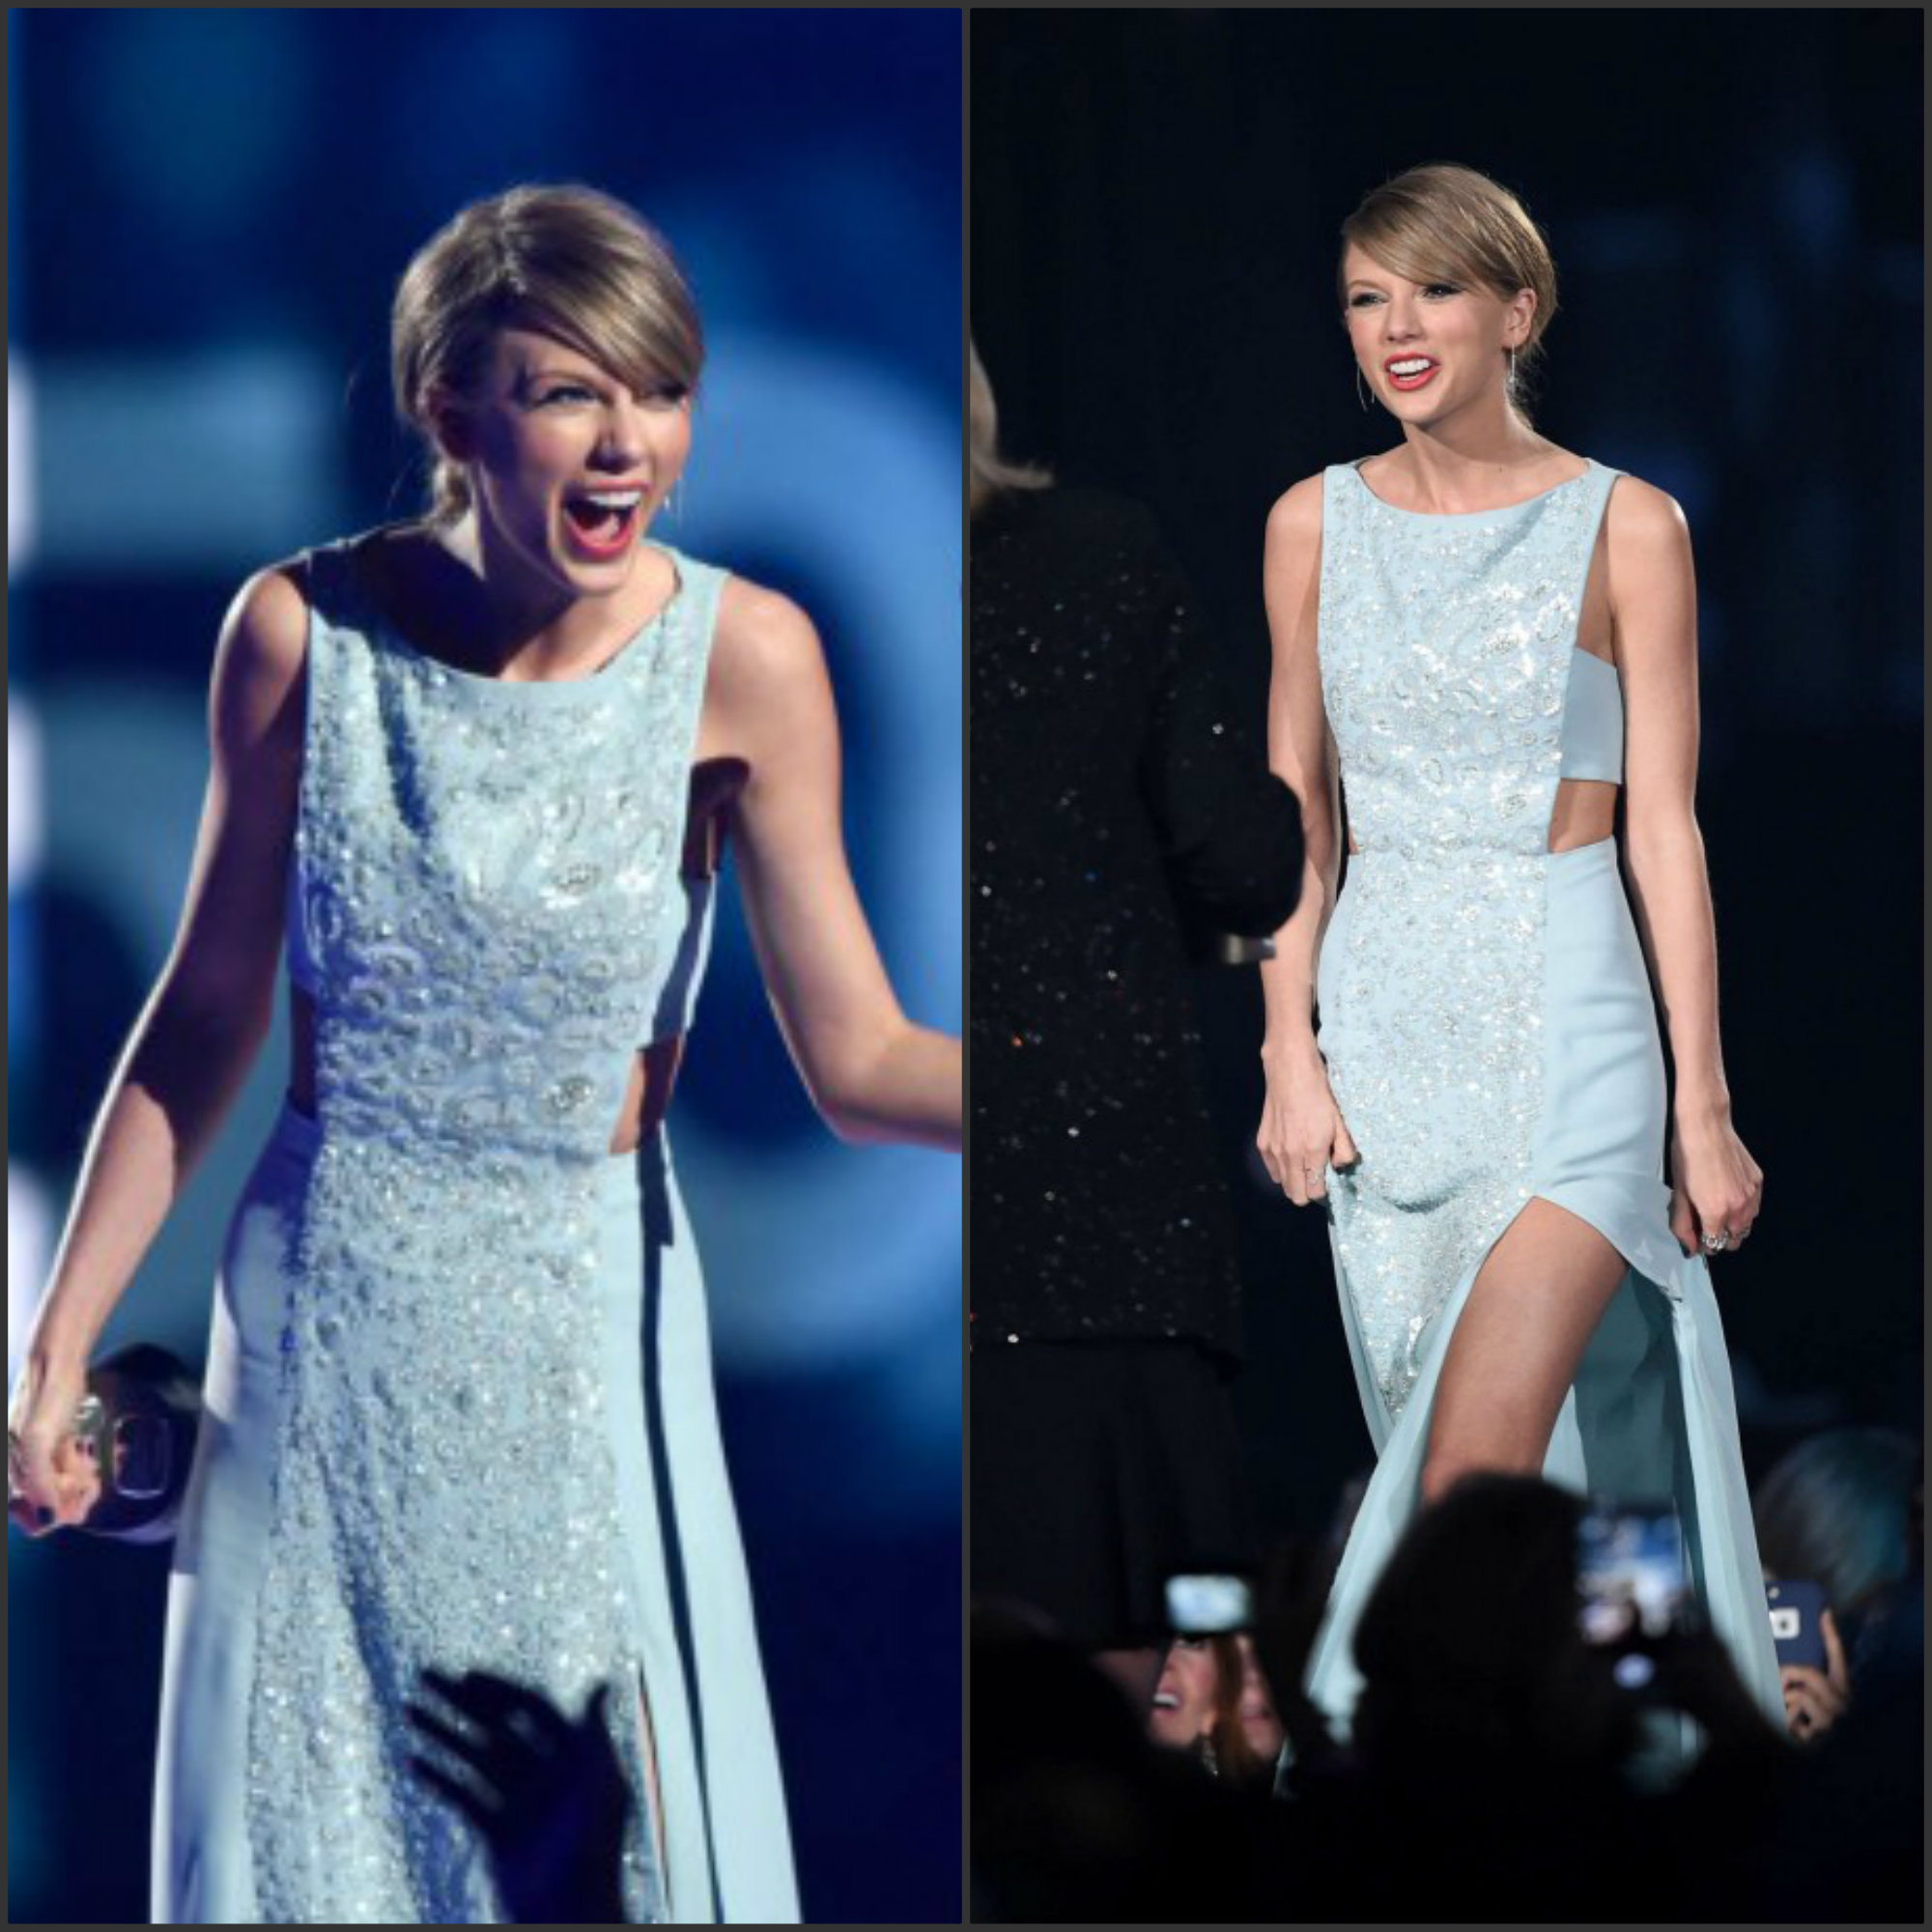 Taylor-Swift-in-Reem-Acra-at-the-2015-ACM-Awards